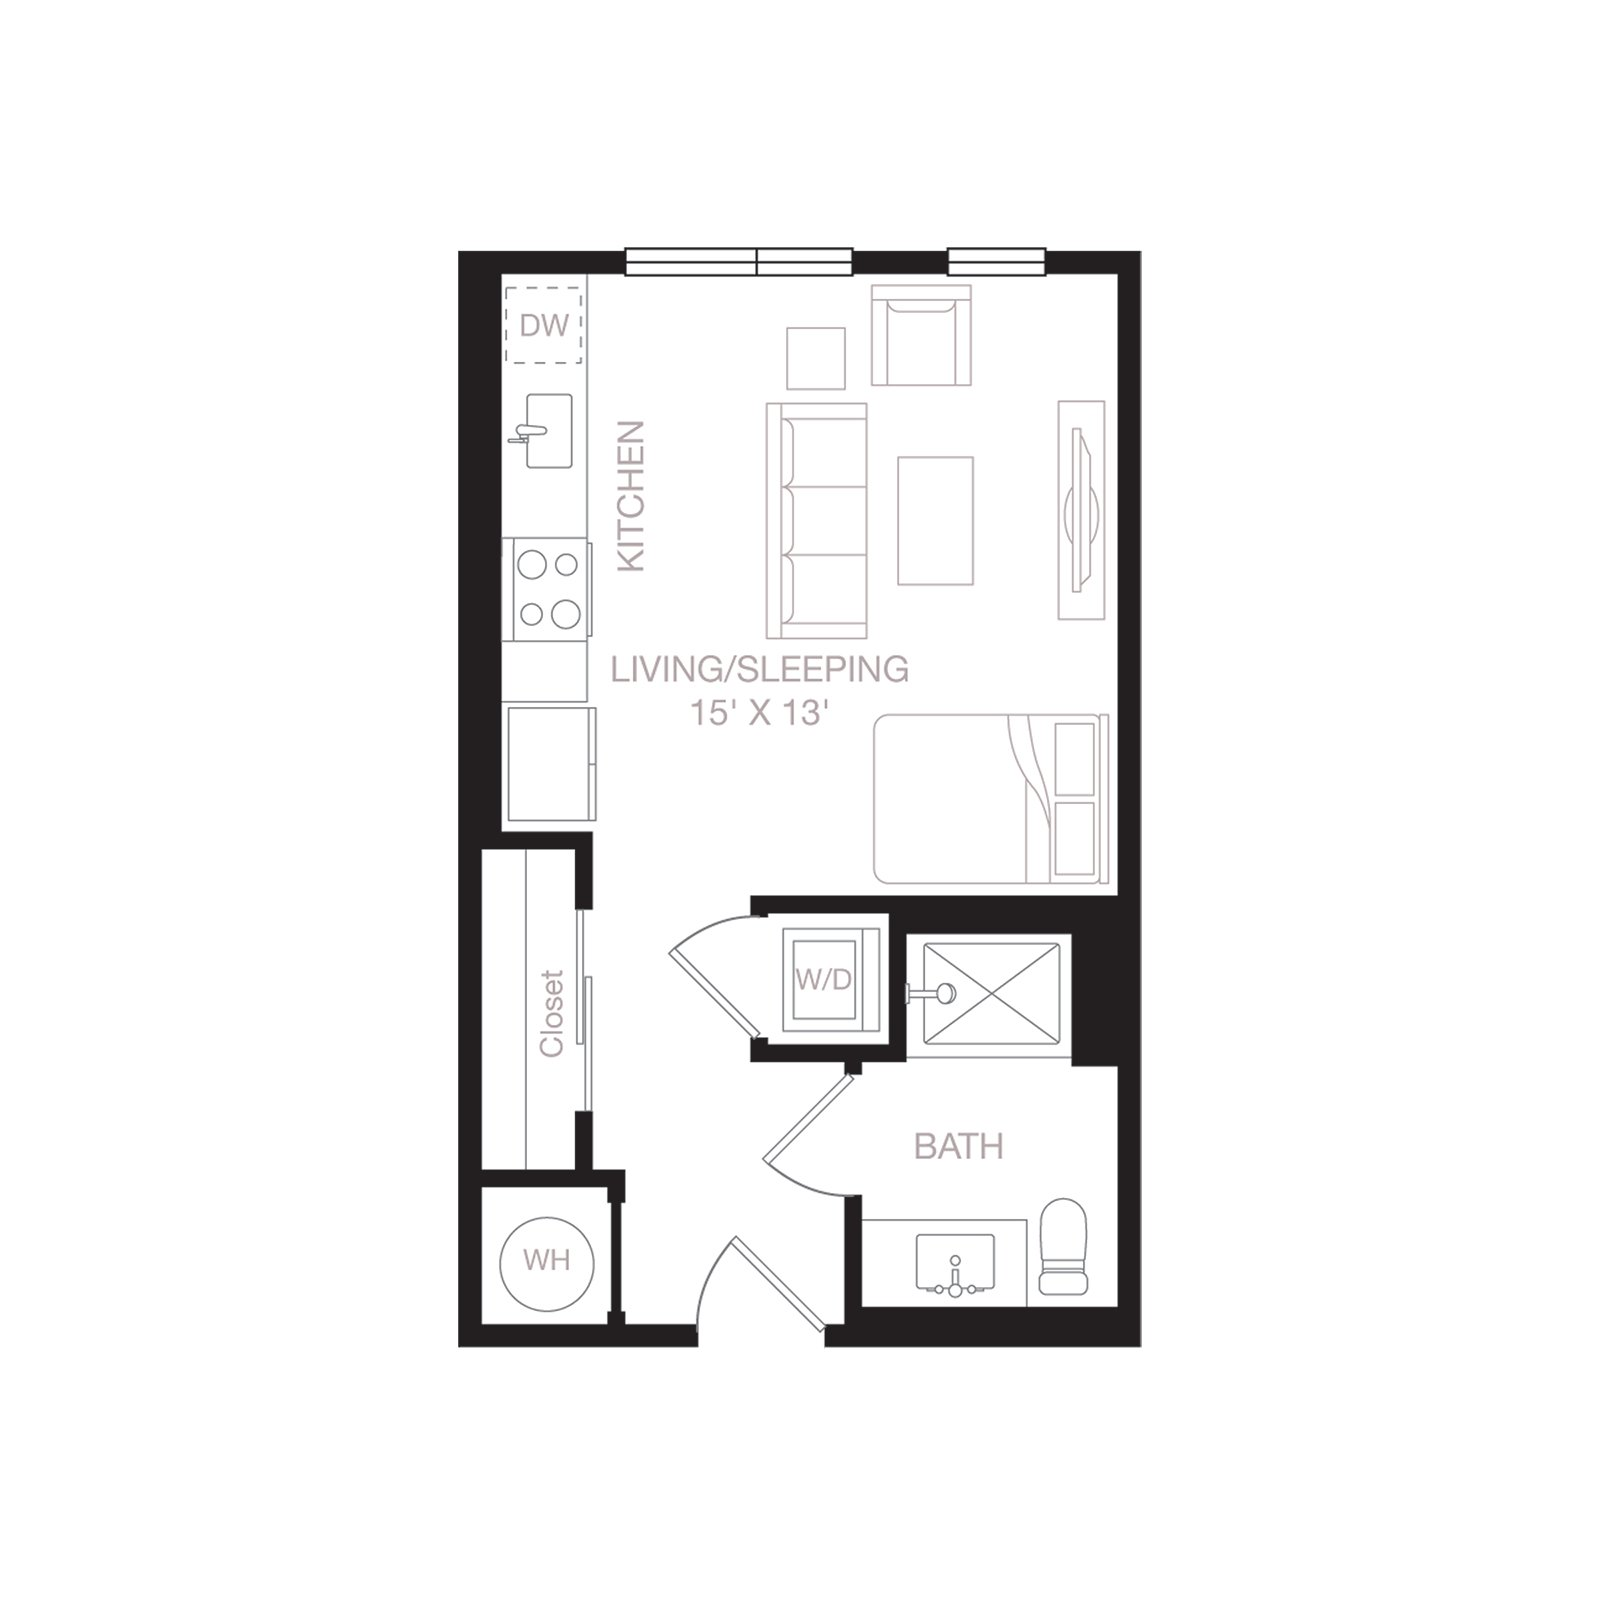 S1 | 0 Bed | 1 Bath diagram